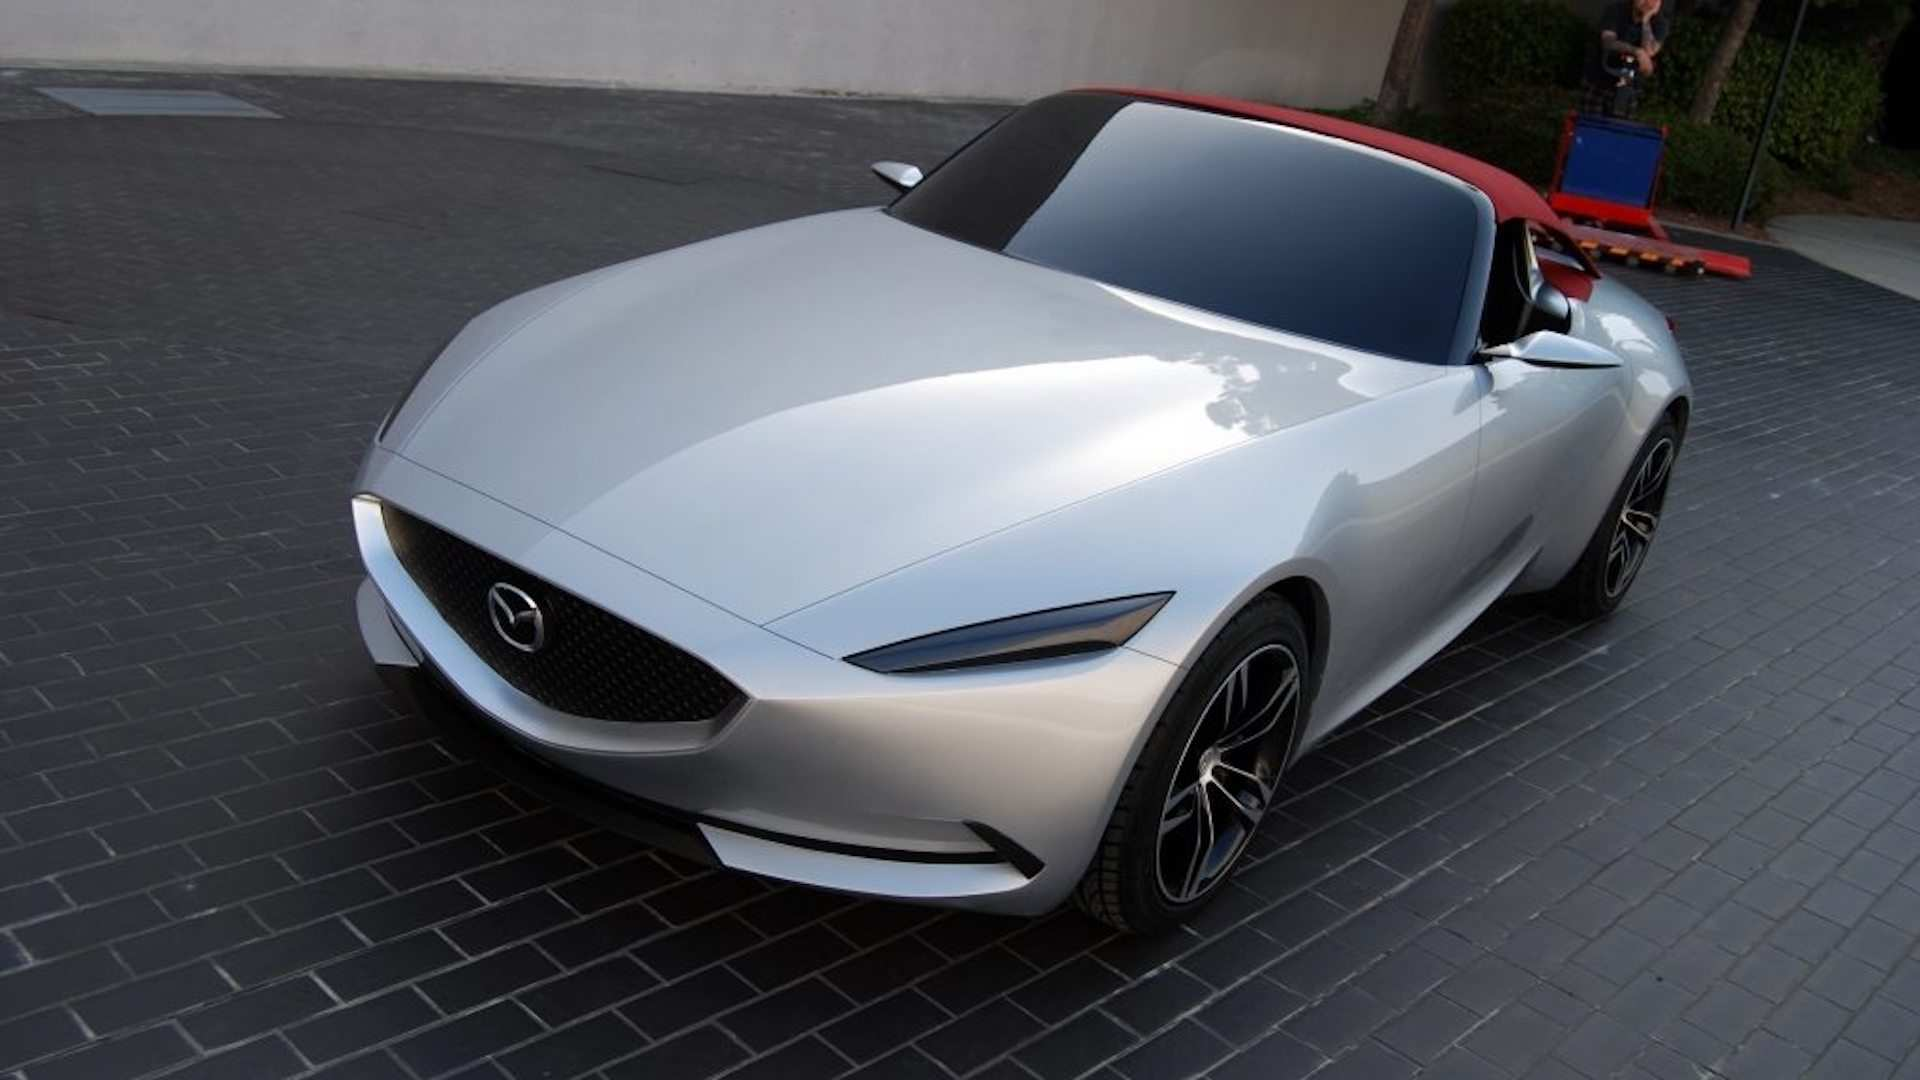 79 The 2020 Mazda Mx 5 Miata Price And Review